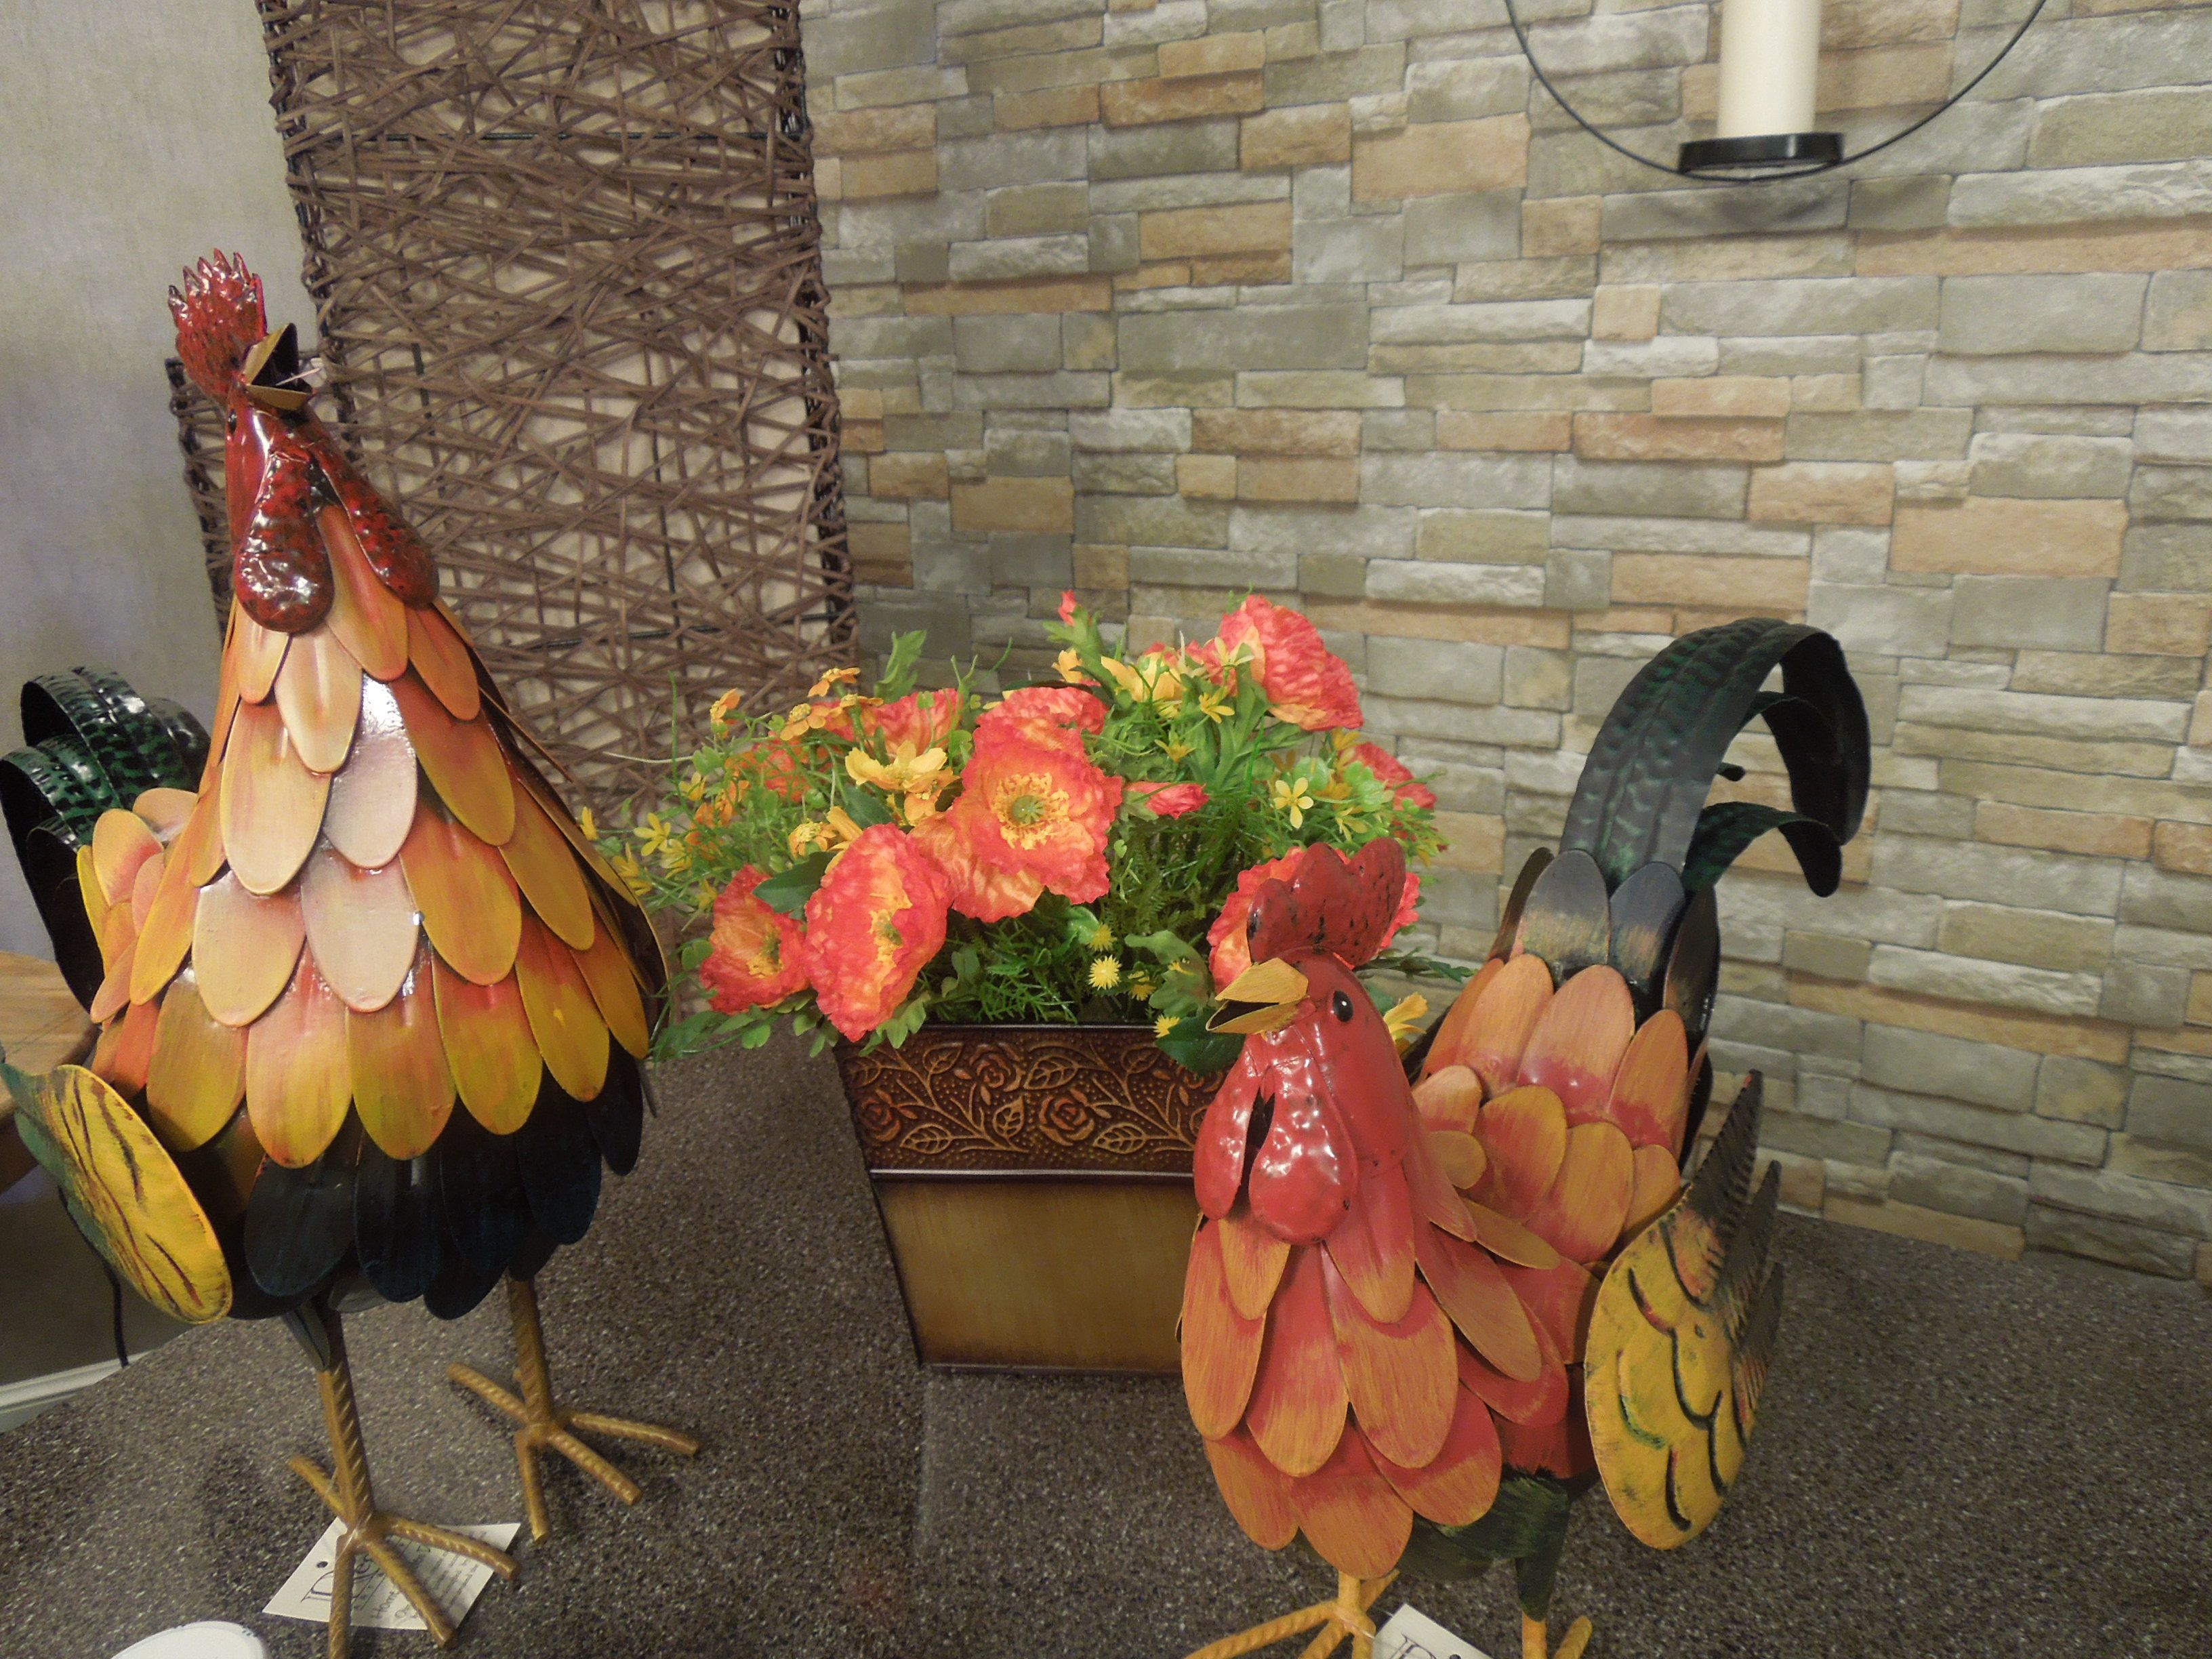 Decorative Chickens And Flowers From The Harvest World Market In